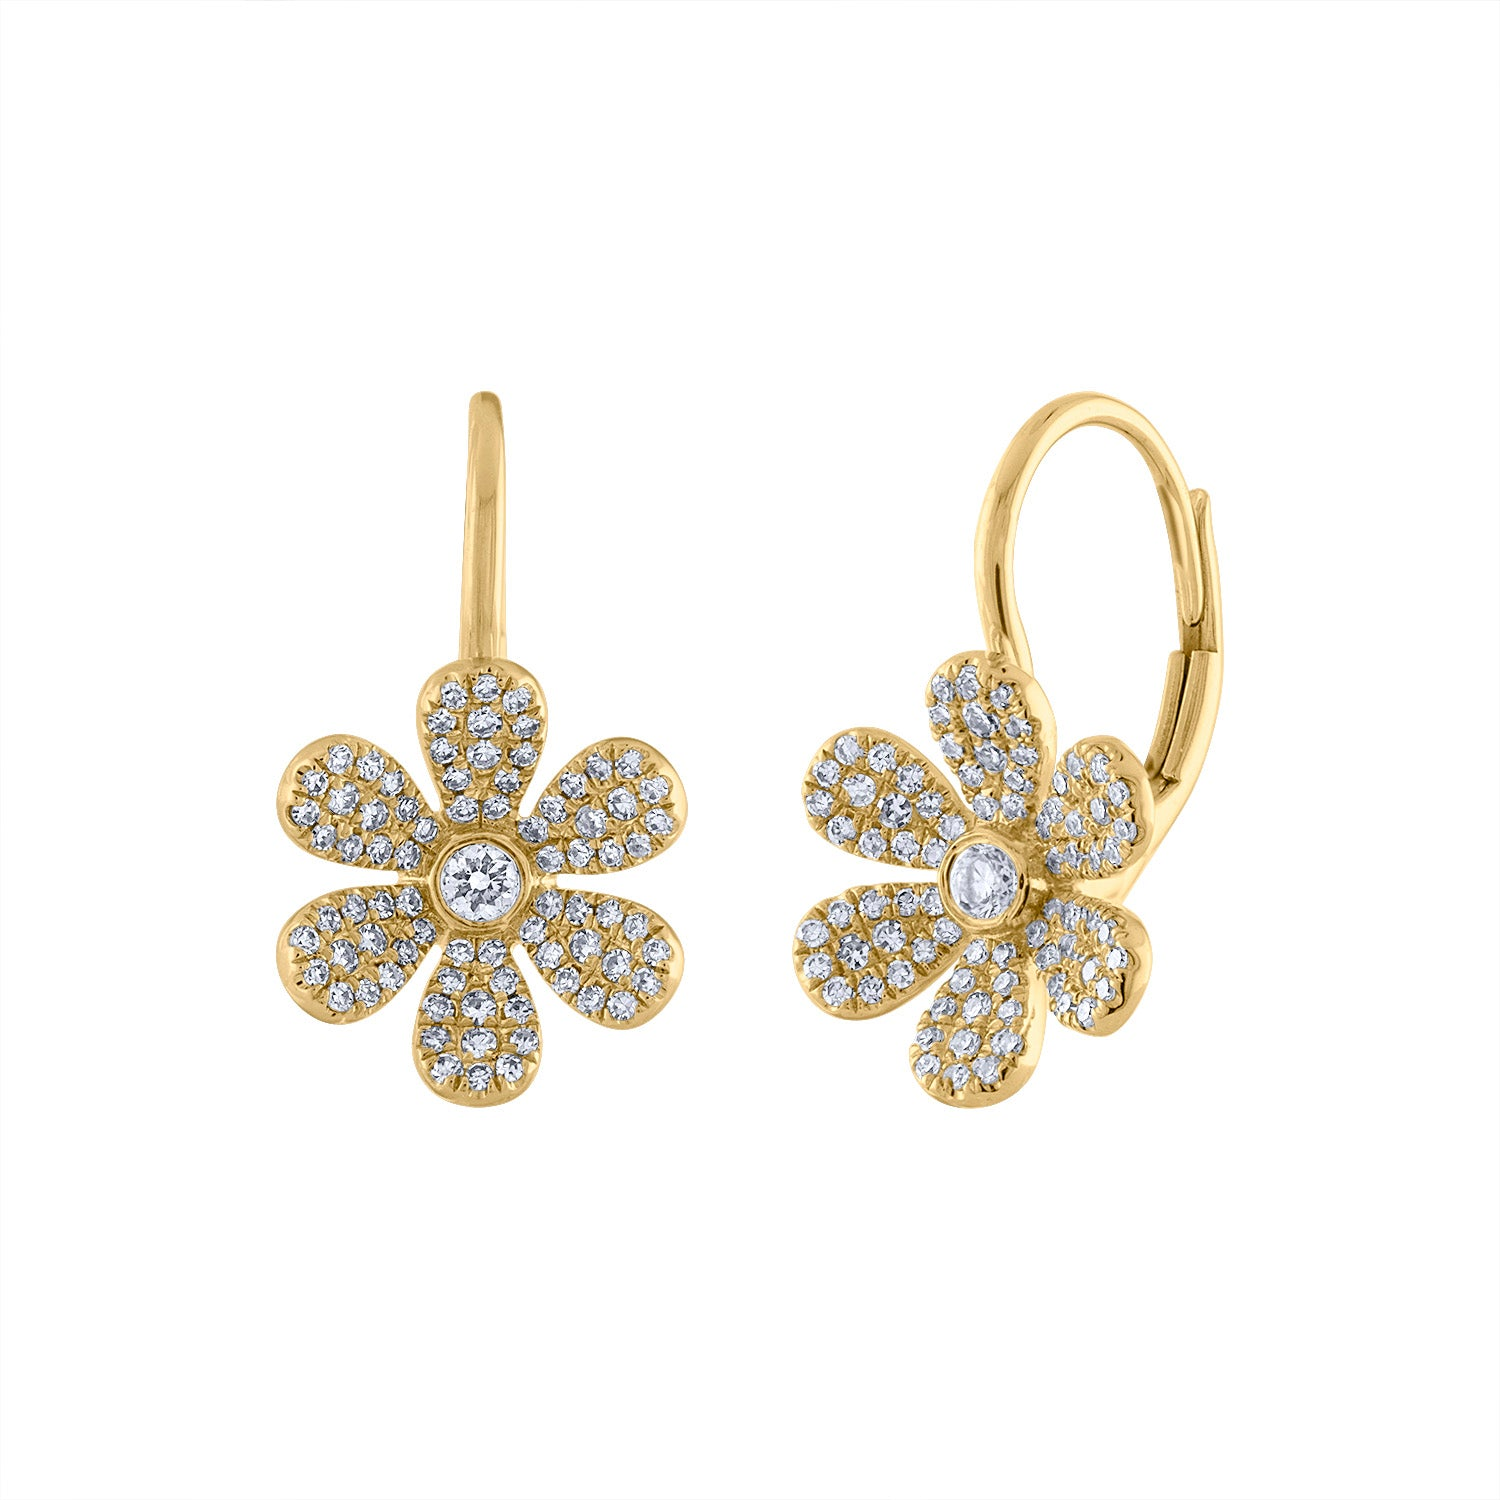 14K Yellow Gold daisy diamond earring